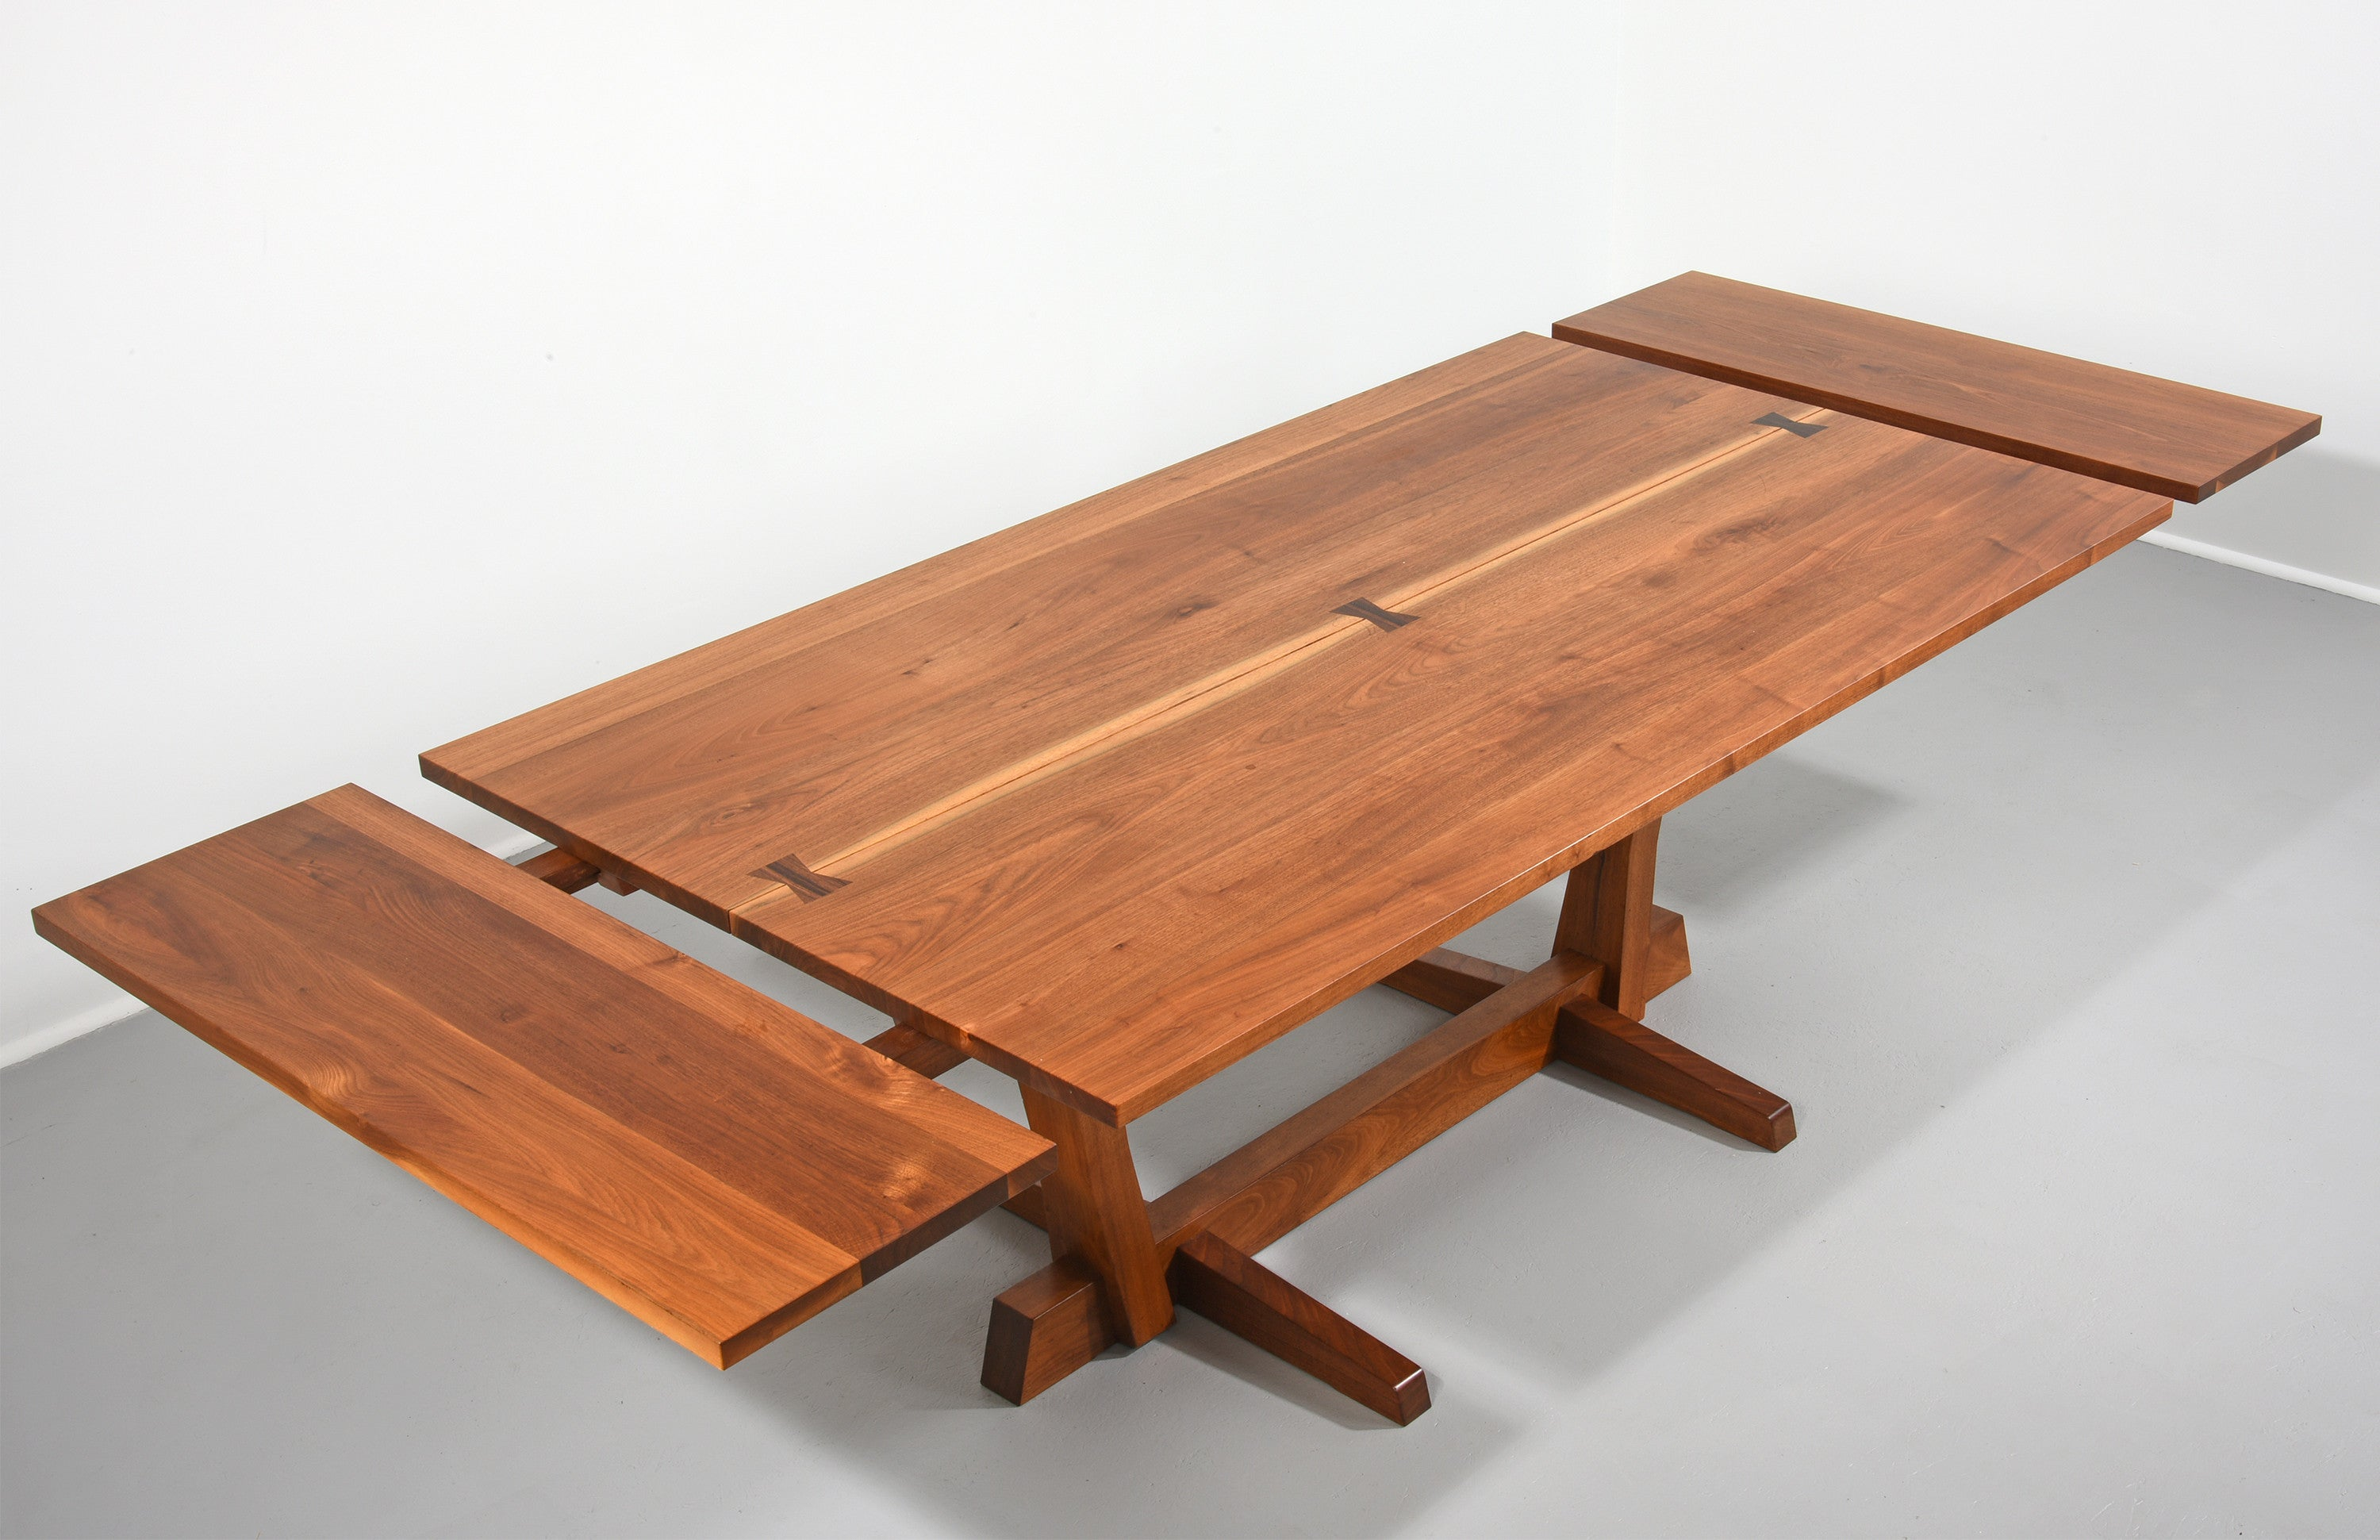 ... George Nakashima Conoid Dining Table In Walnut And Rosewood, 1970s    The Exchange Int ...